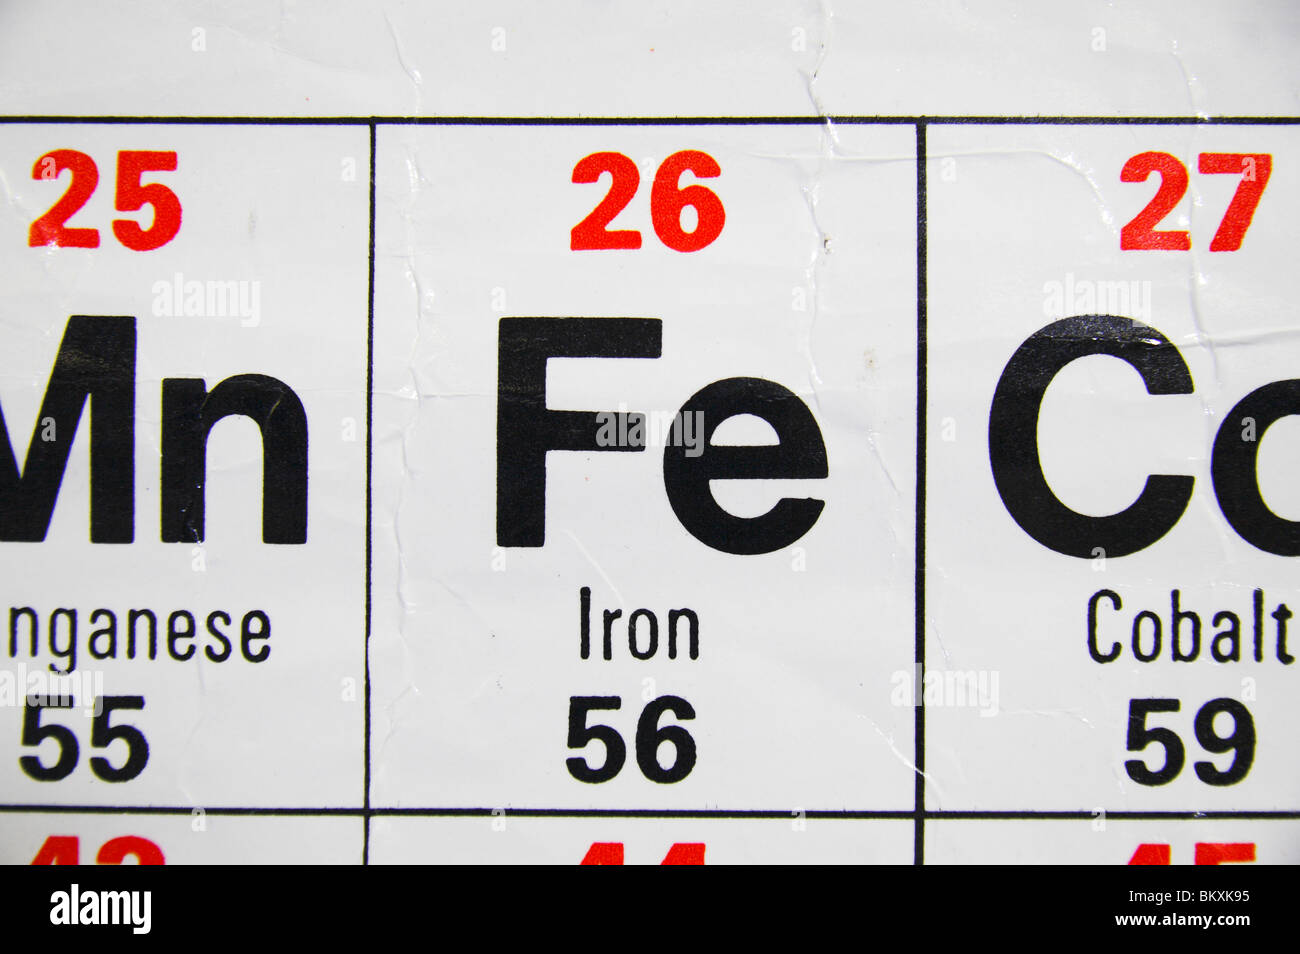 Close up view of a standard uk high school periodic table focusing close up view of a standard uk high school periodic table focusing on the ferrous metal iron gamestrikefo Choice Image